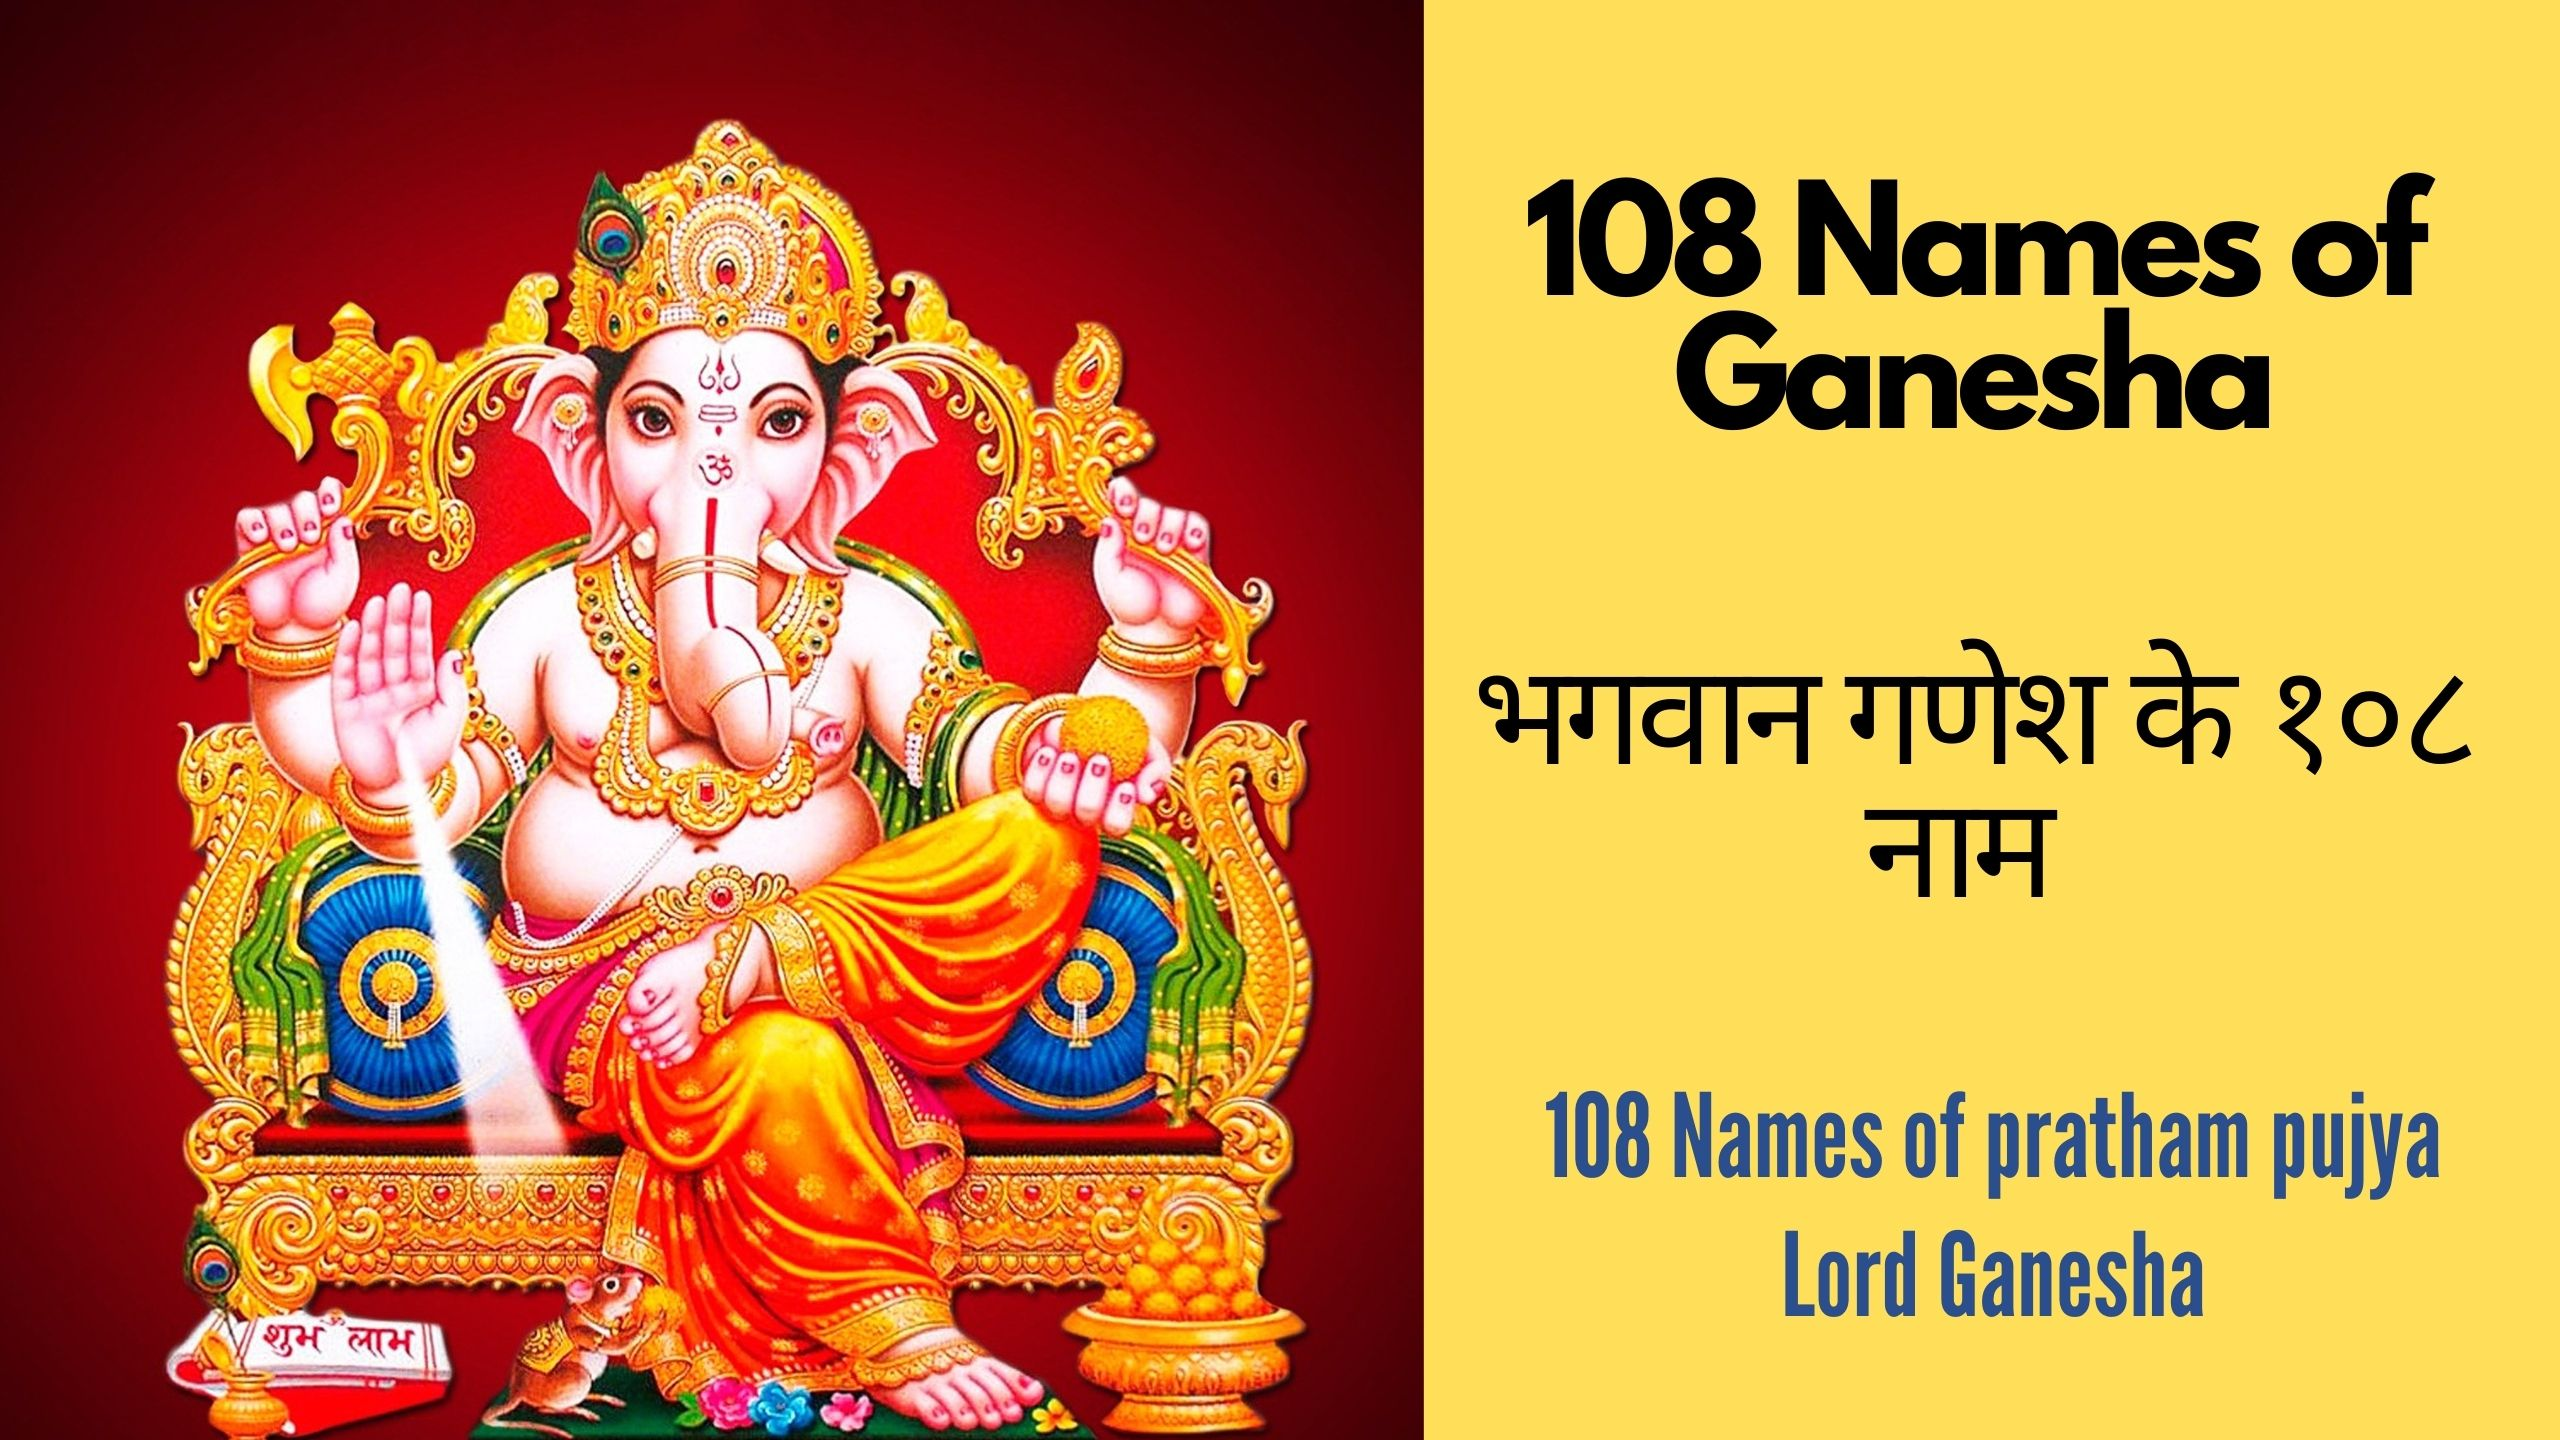 108 Names of Ganesha